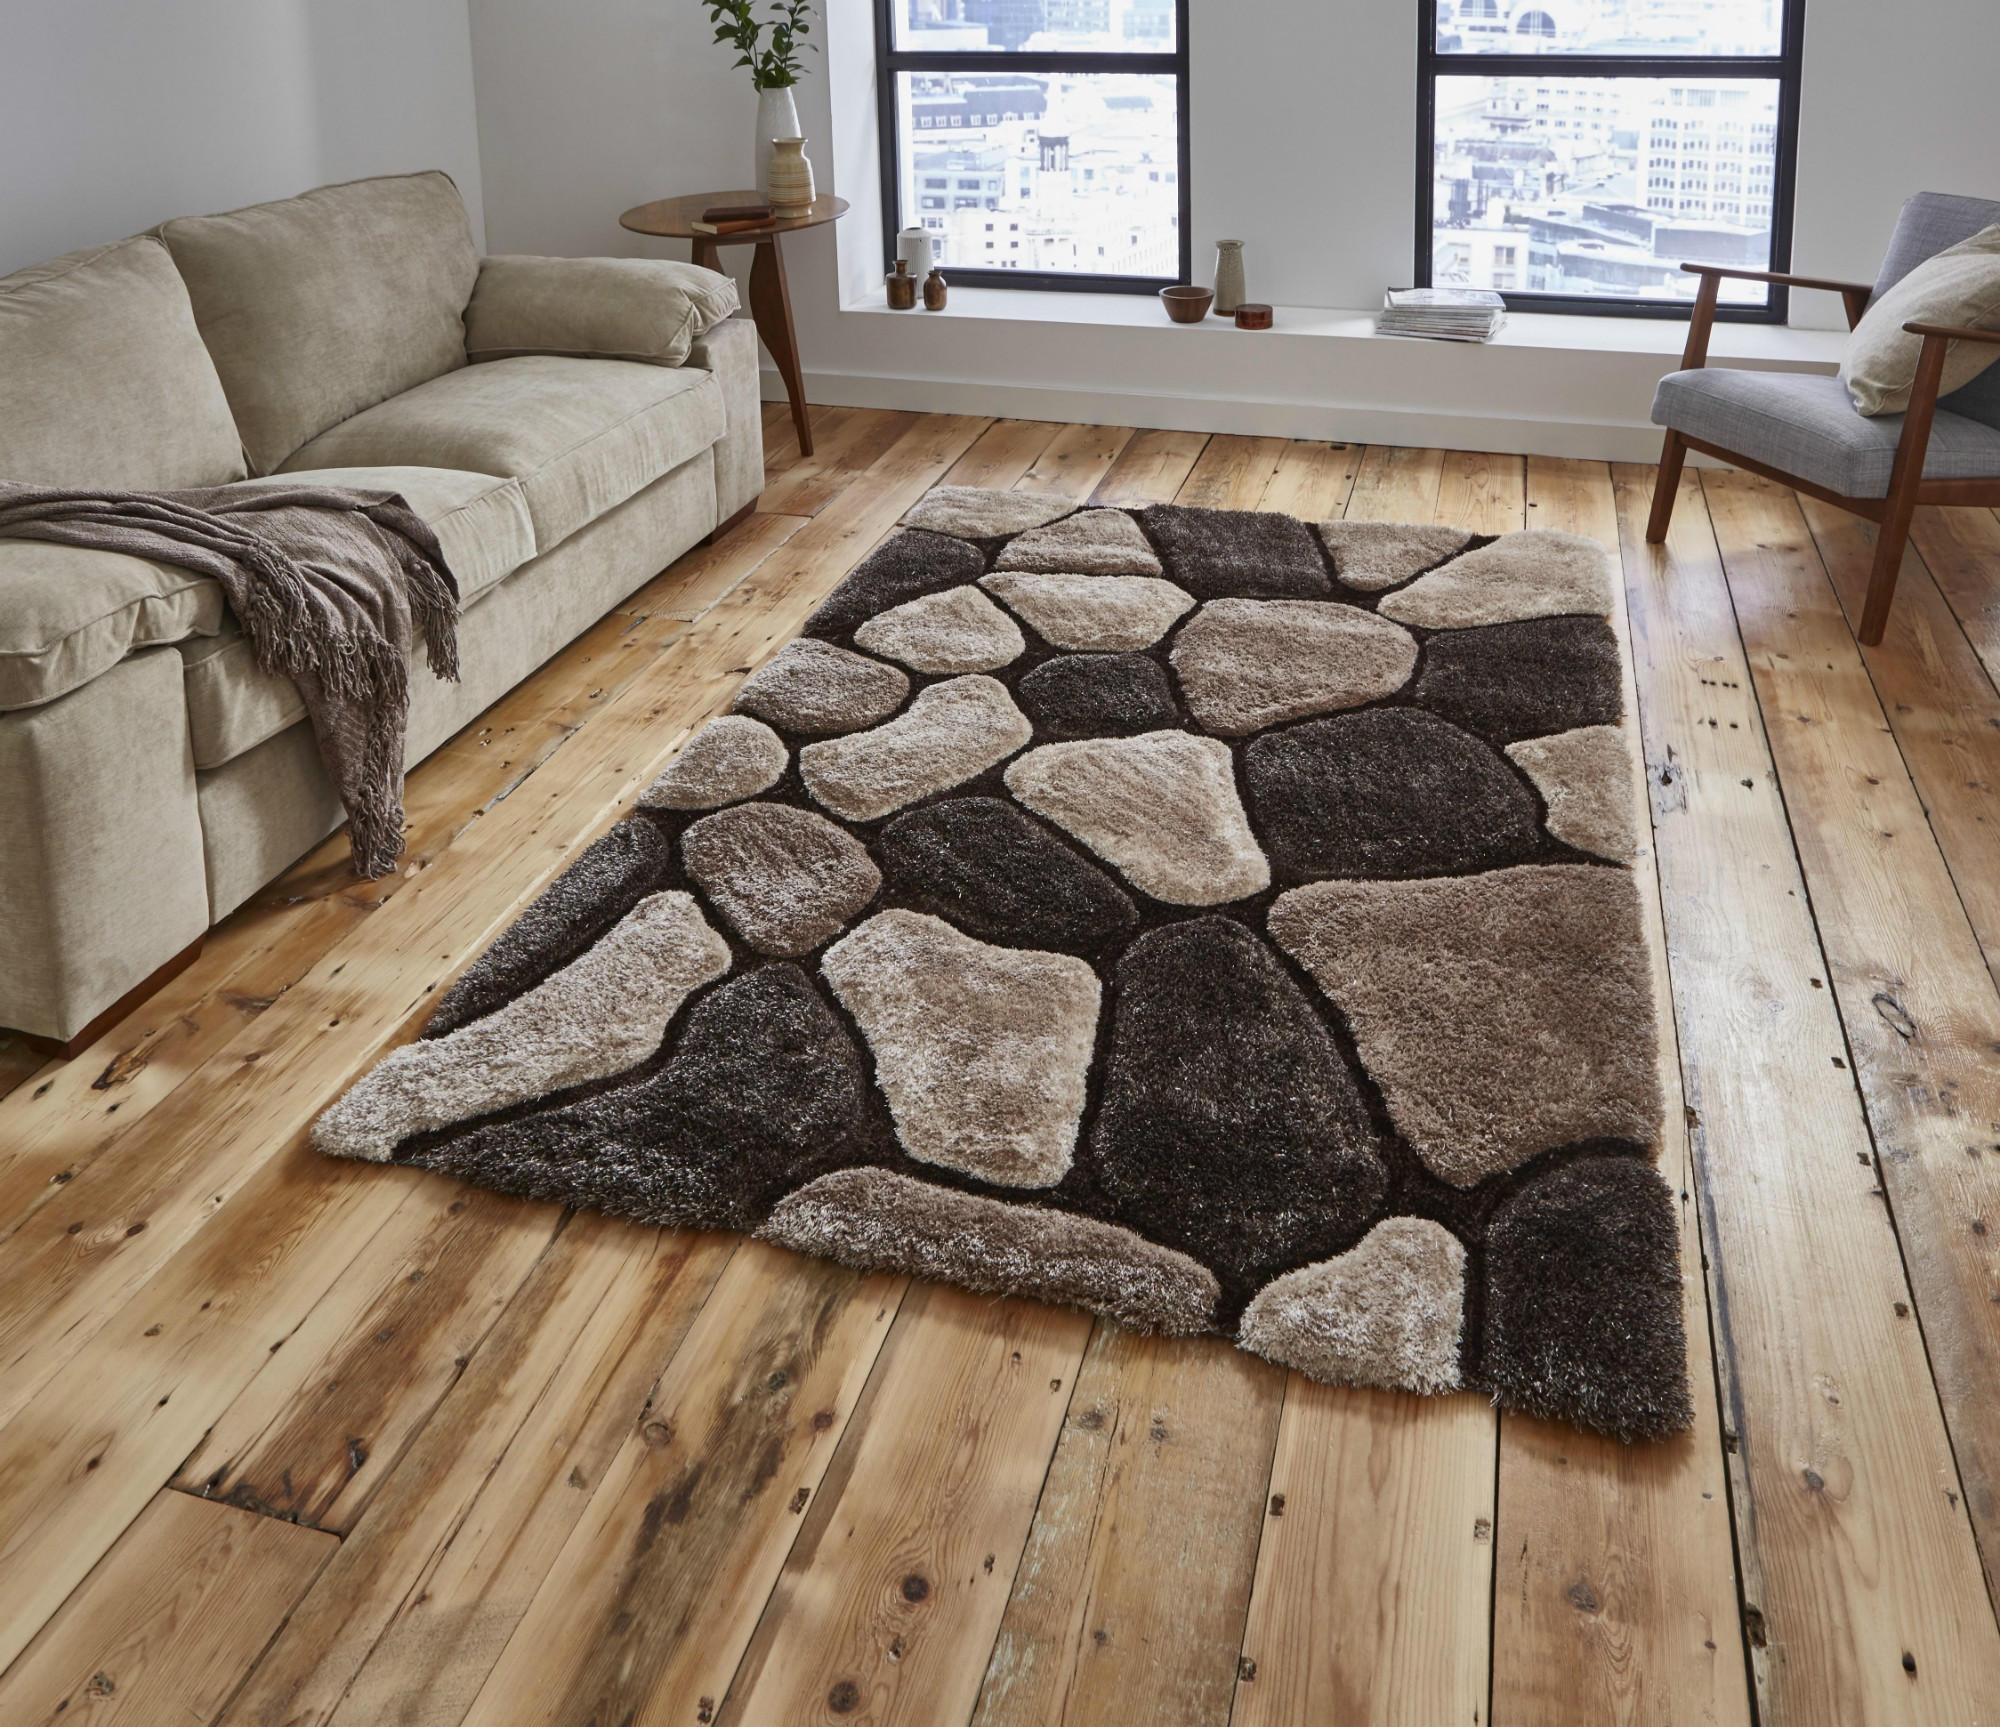 Pebble Rugs Uk Home Decors Collection Regarding Pebble Rugs (Image 14 of 15)